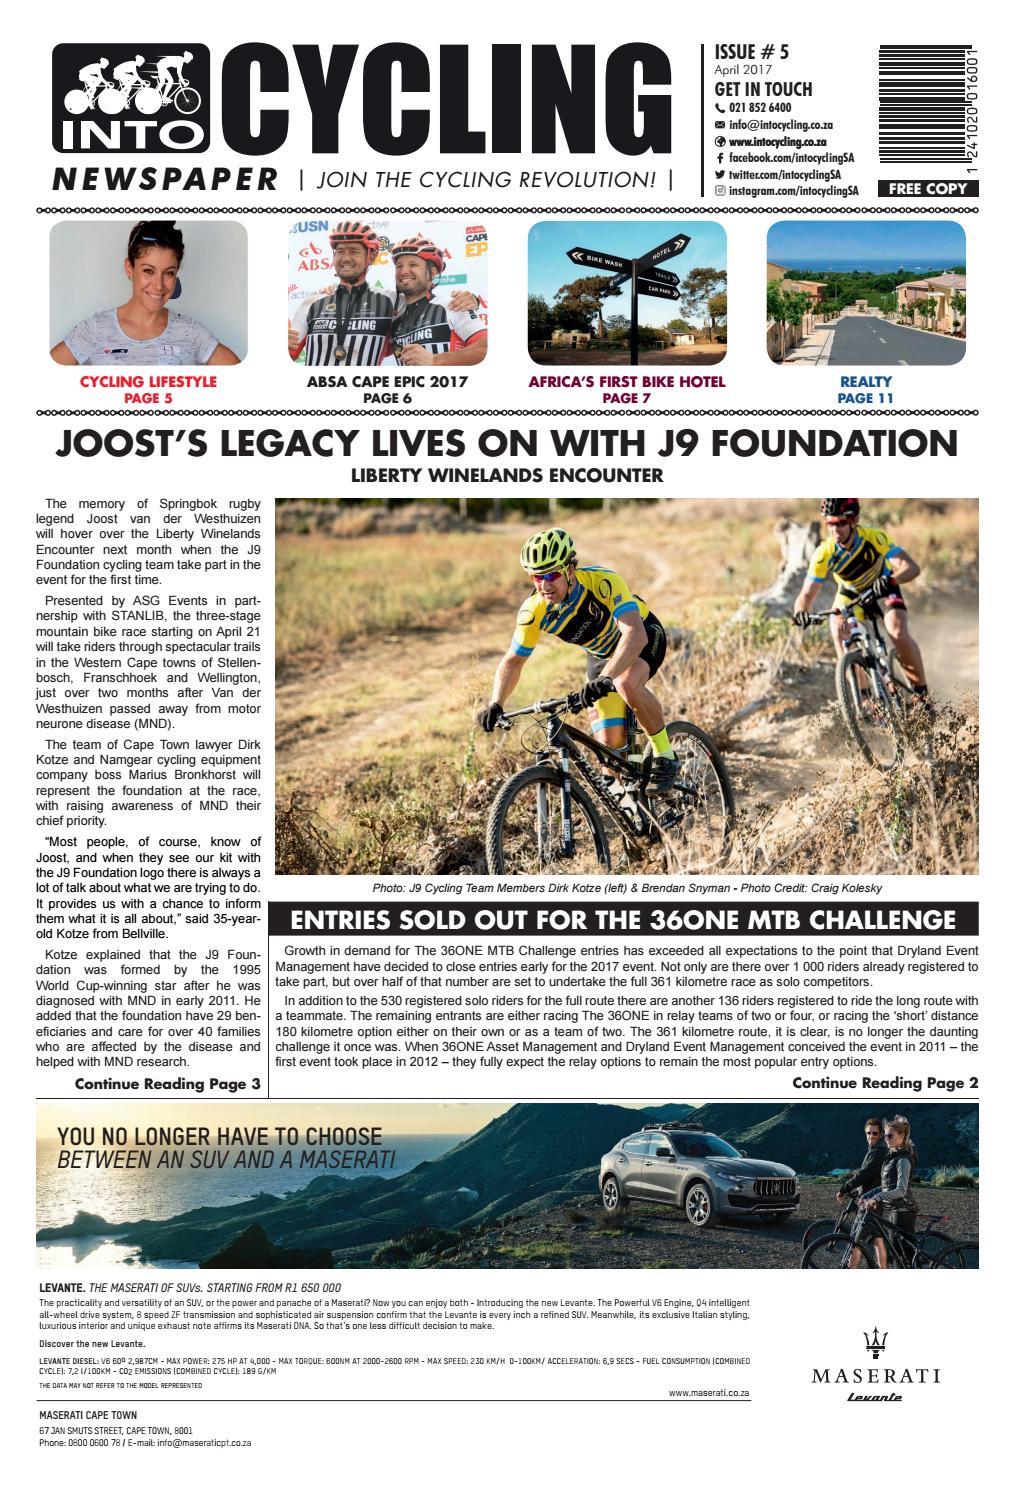 411503696 Into Cycling - April 2017 by Into Cycling - issuu